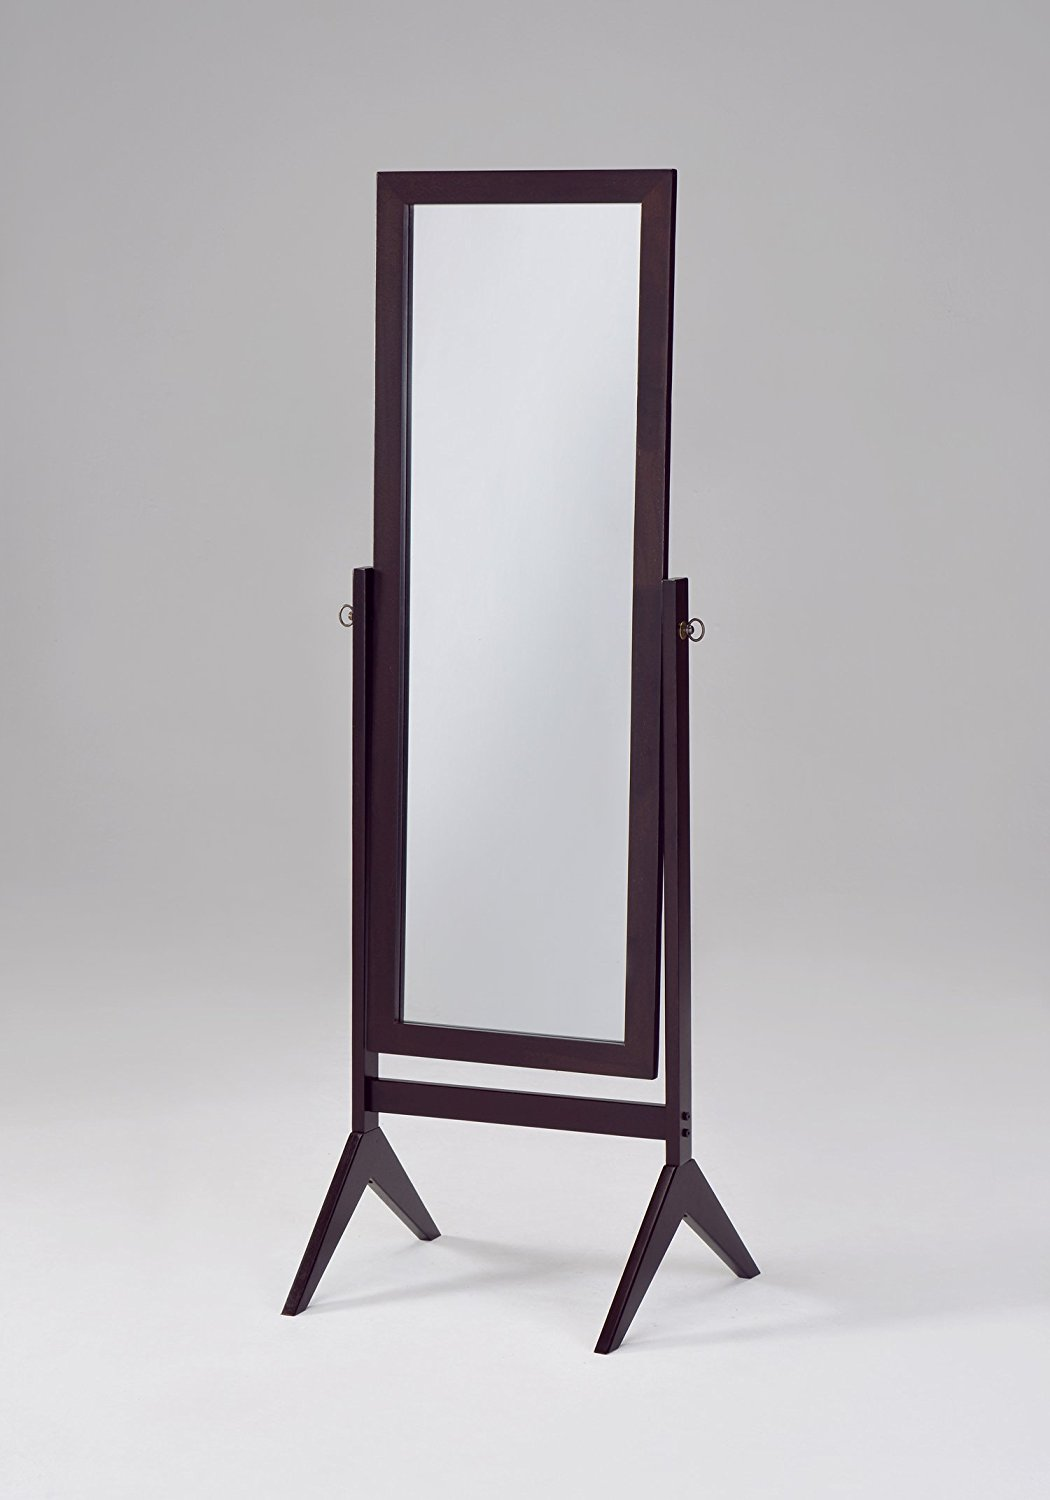 Full lenght mirror Big Floor Length Mirror Espresso Bedroom Tall Standing Frame Wooden Cheval Mirror Walmartcom Walmart Floor Length Mirror Espresso Bedroom Tall Standing Frame Wooden